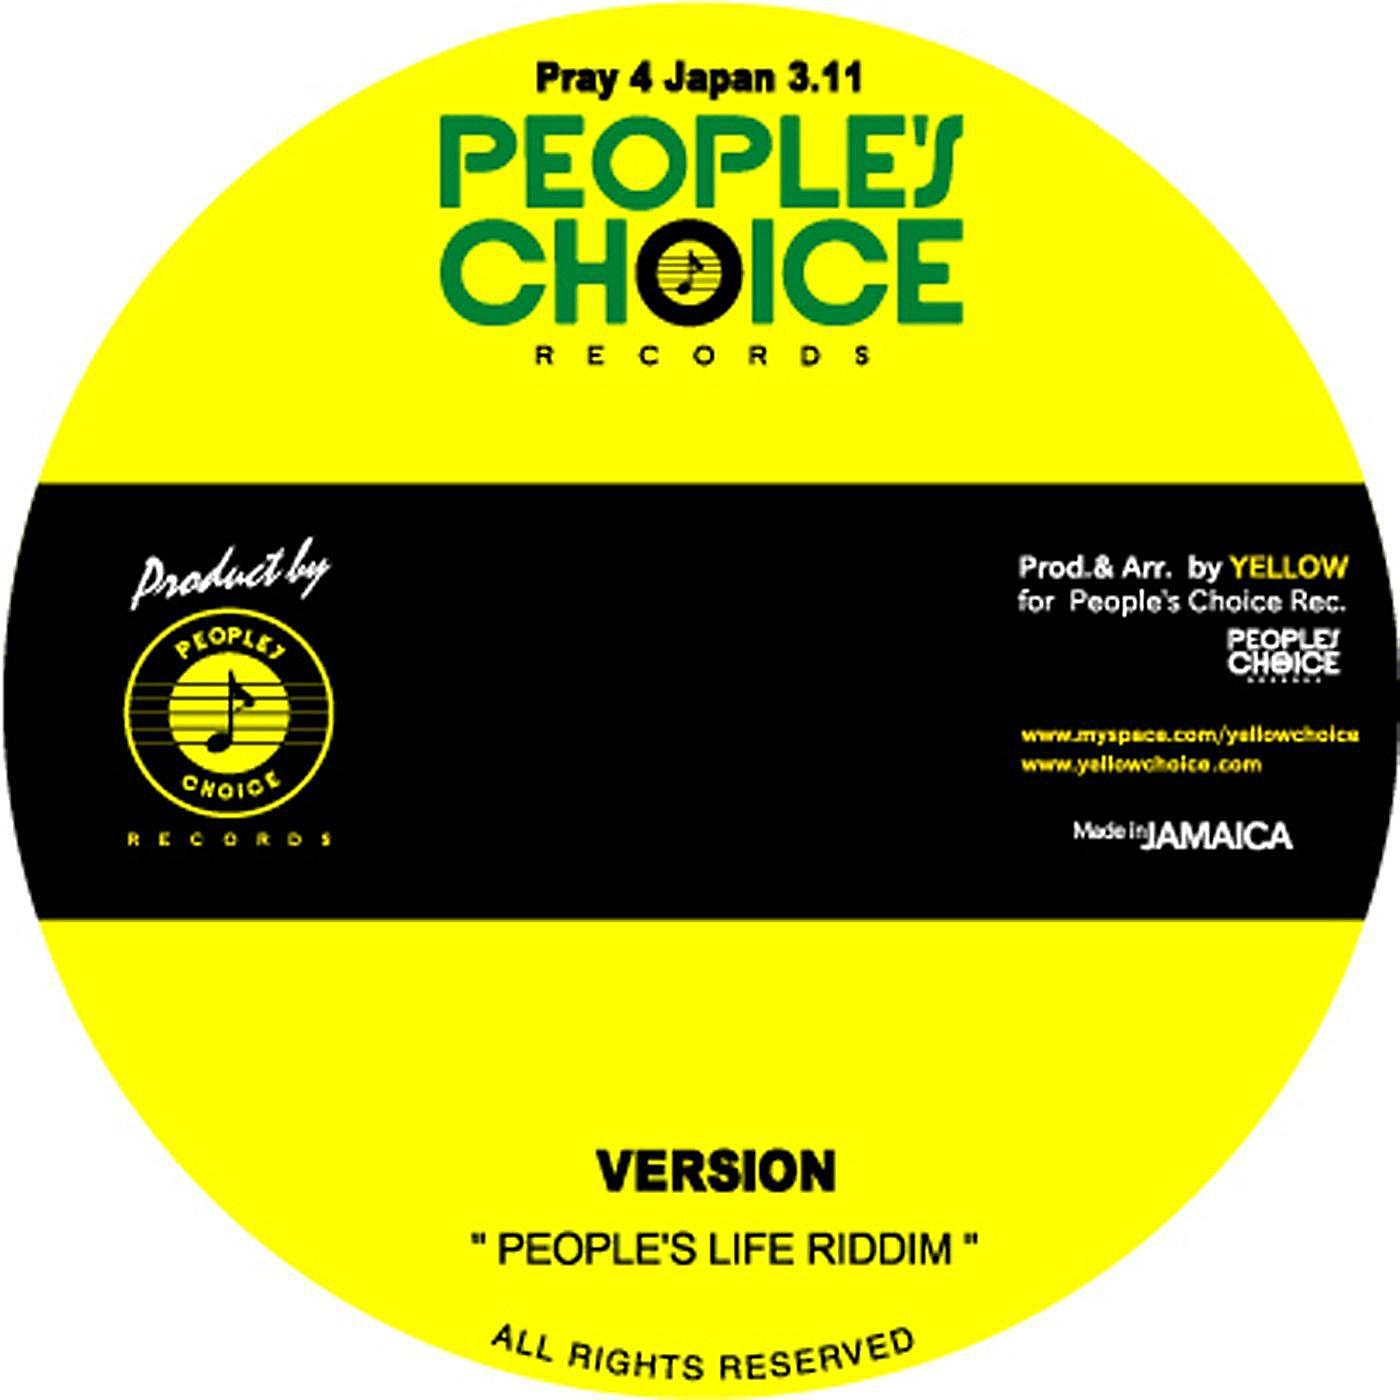 People's Life Riddim